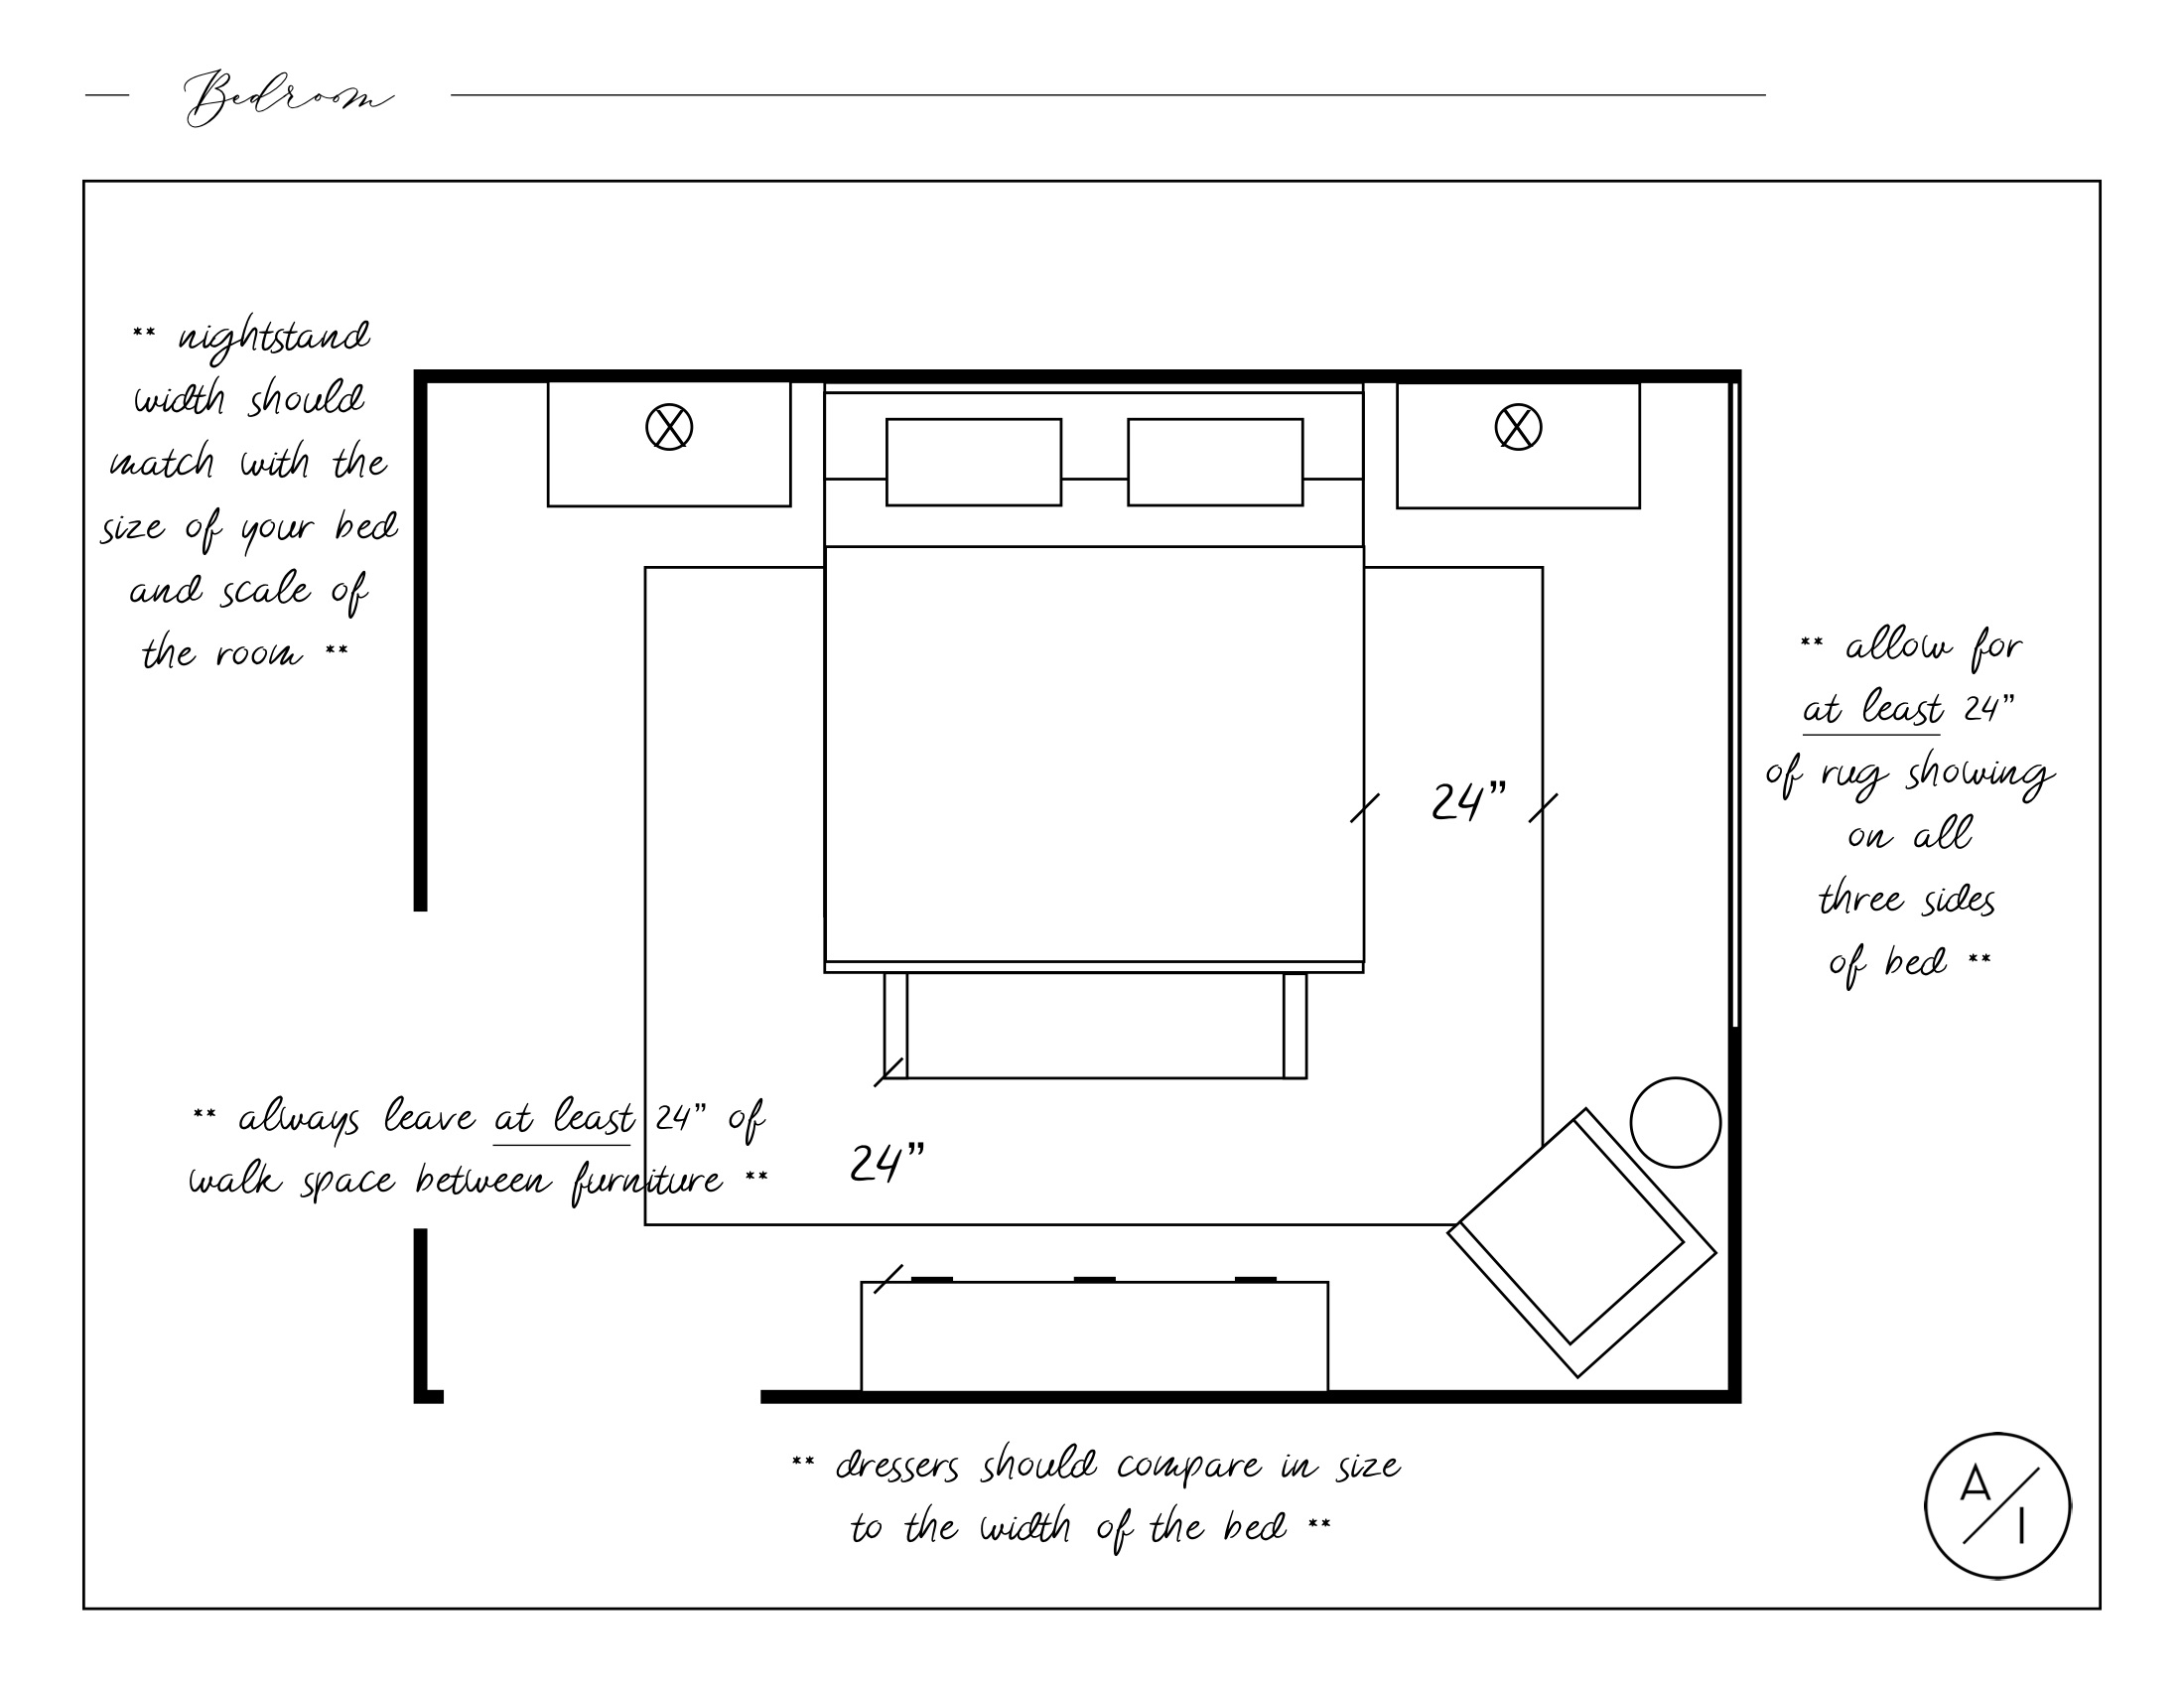 Bedroom Layout.jpg